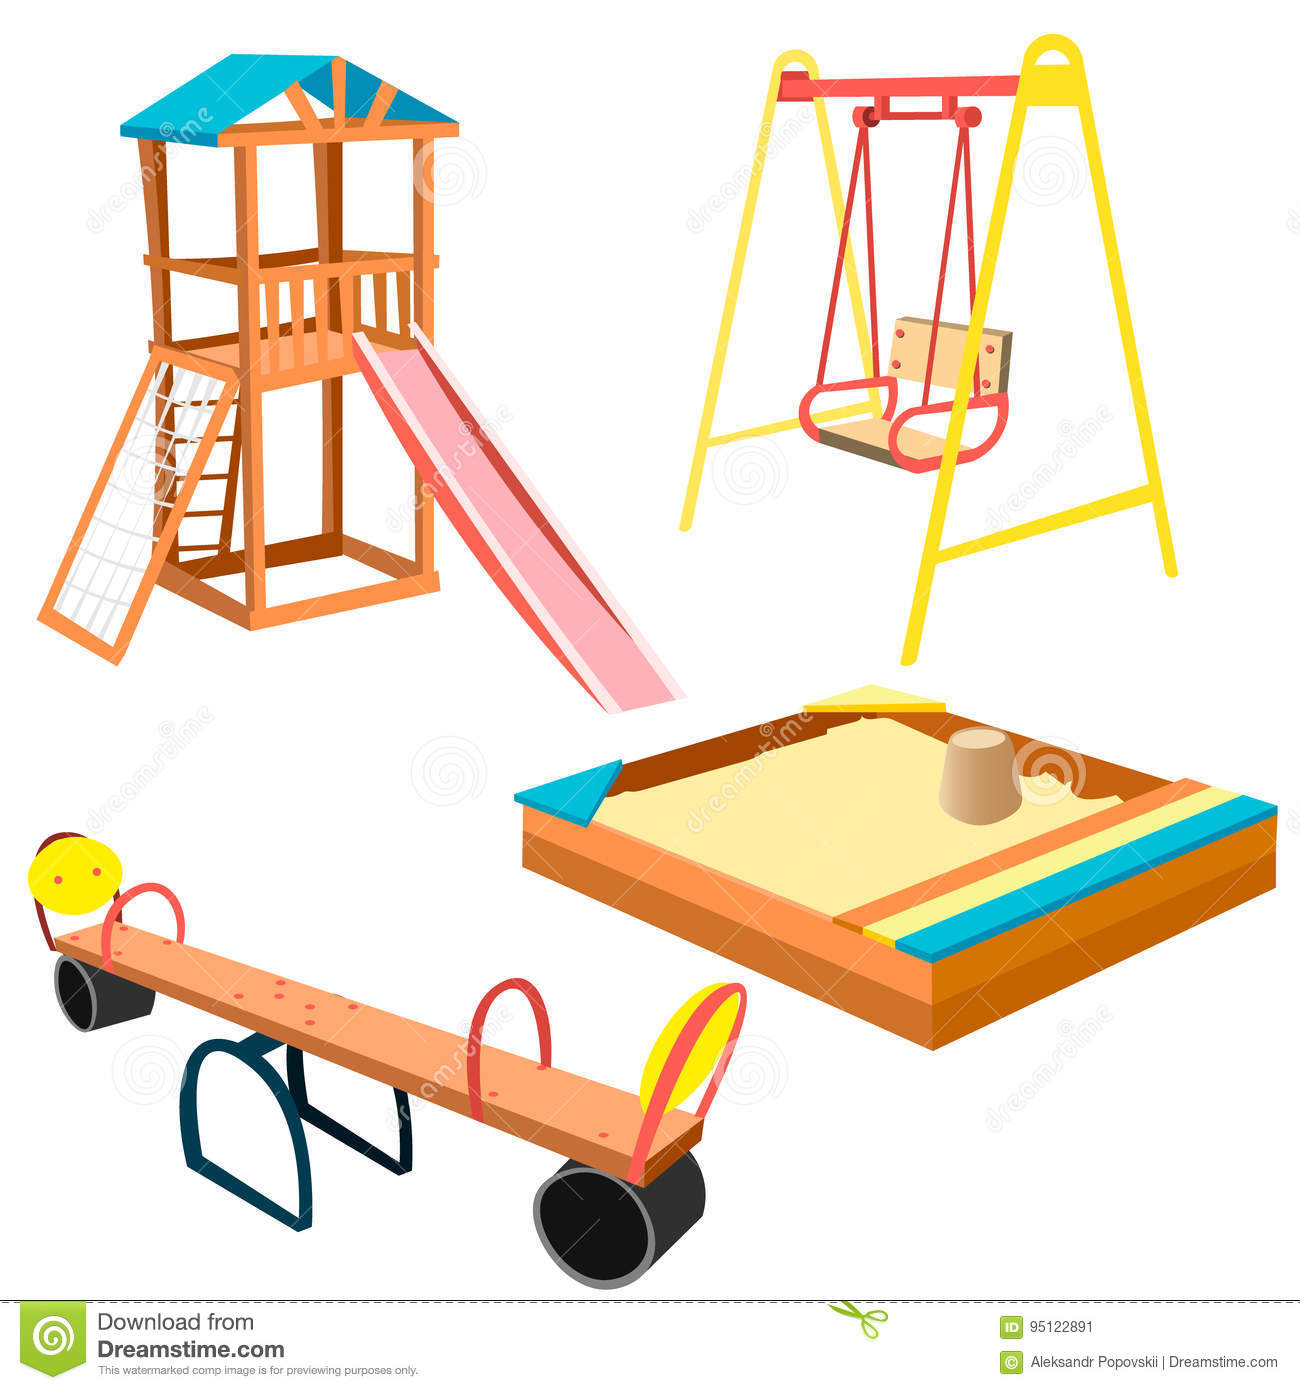 Kids Playground Equipment With Swings And Slides. Stock ...